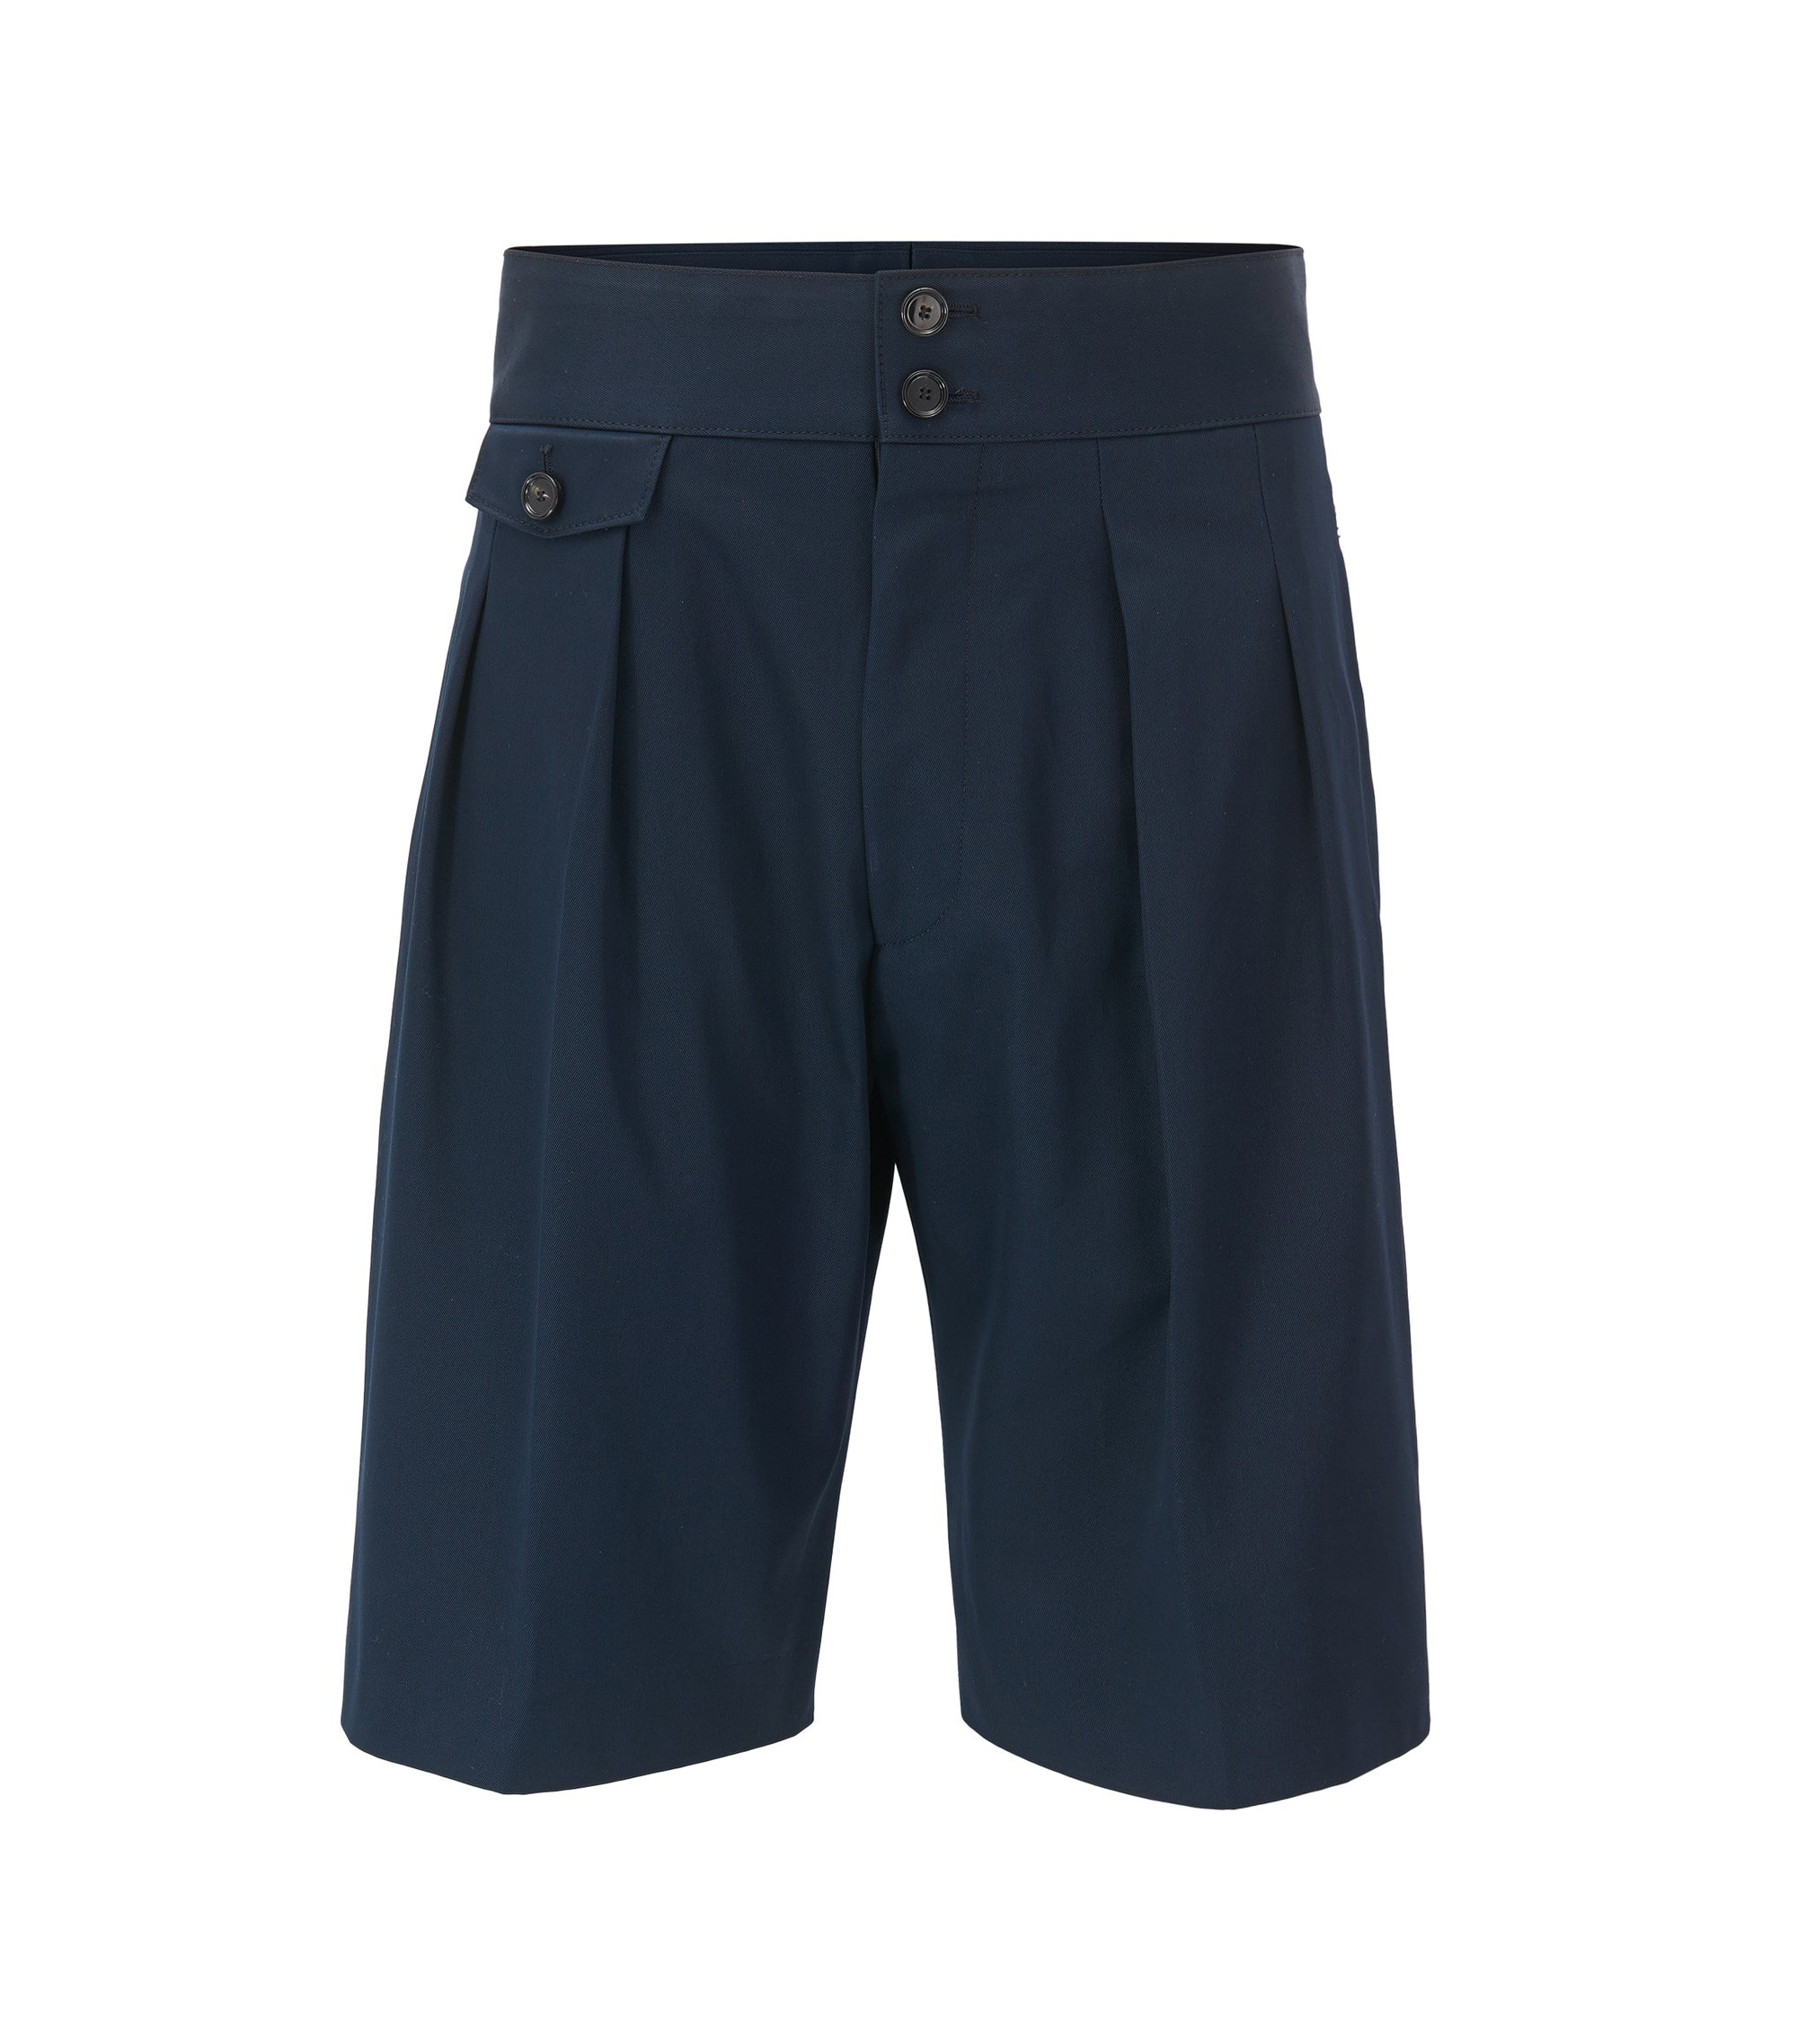 High Waisted Pleated Shorts | 'Anker', Dark Blue